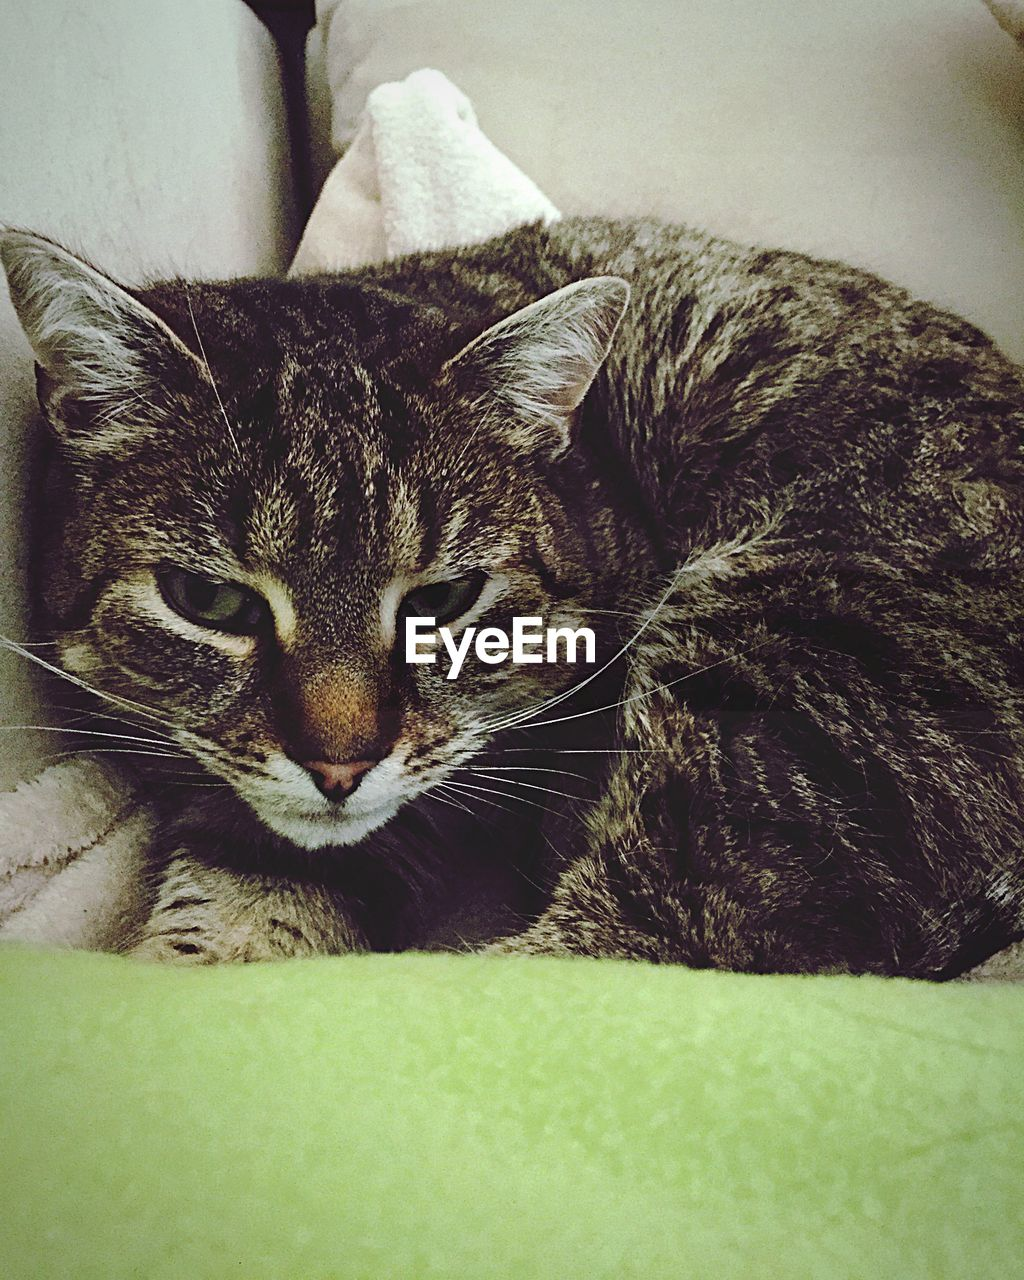 cat, pets, domestic, domestic cat, domestic animals, feline, mammal, one animal, animal themes, animal, relaxation, vertebrate, furniture, indoors, bed, sofa, no people, resting, close-up, lying down, whisker, tabby